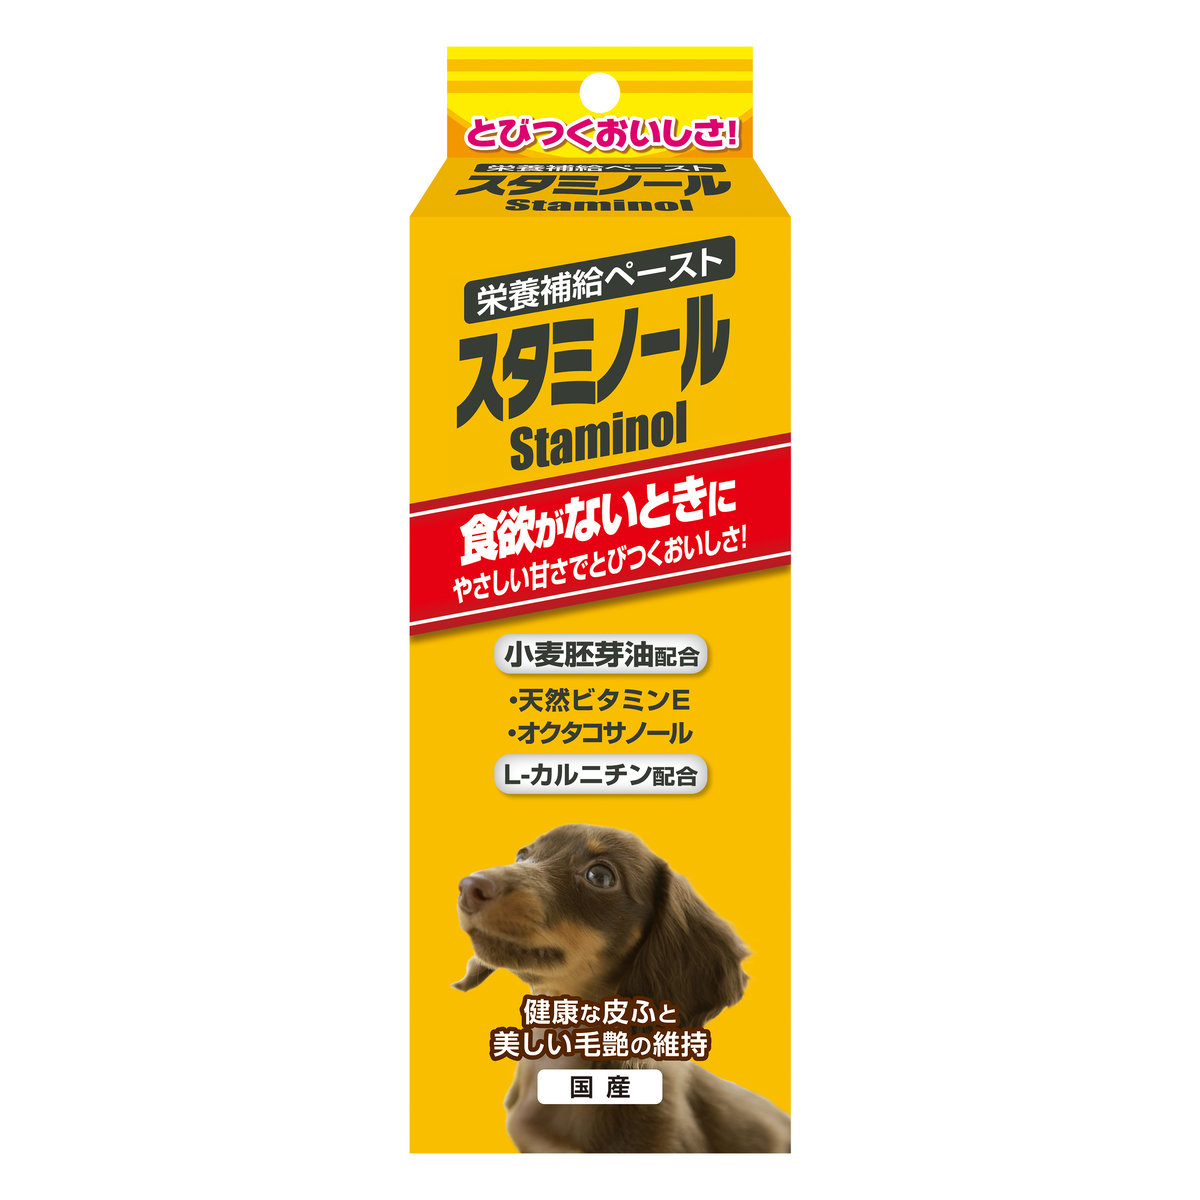 EB Provoke the Appetite Supplement for Dogs and Cats 33G